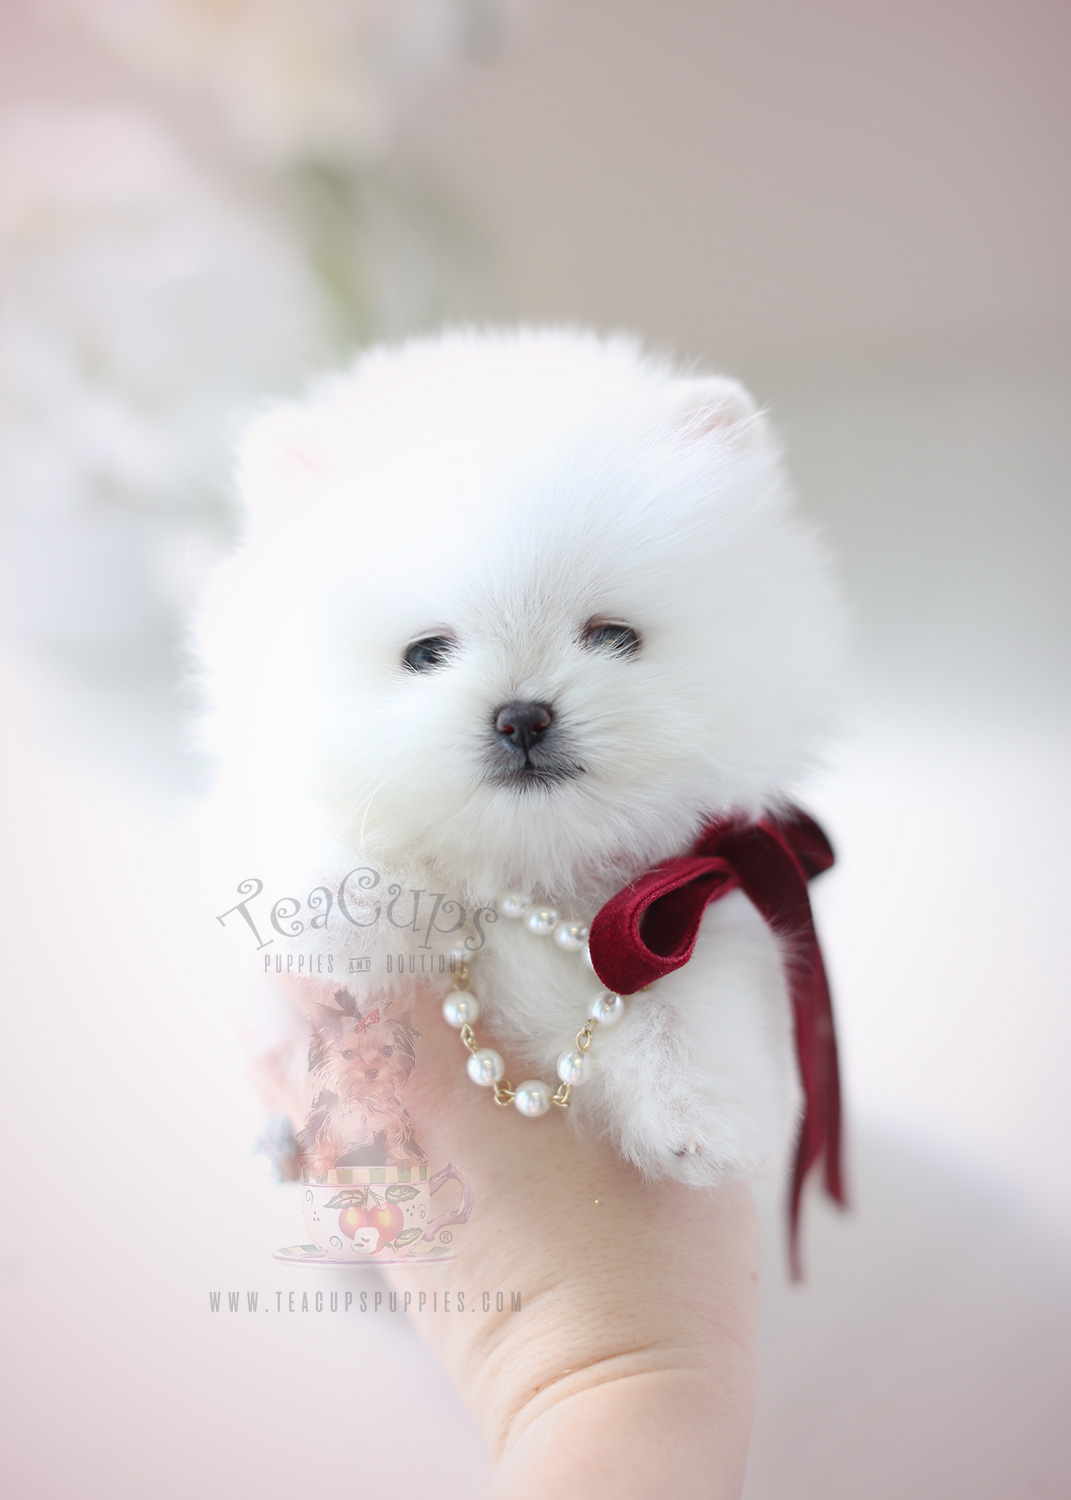 Teacup Pomeranian Puppies For Sale In Miami Ft